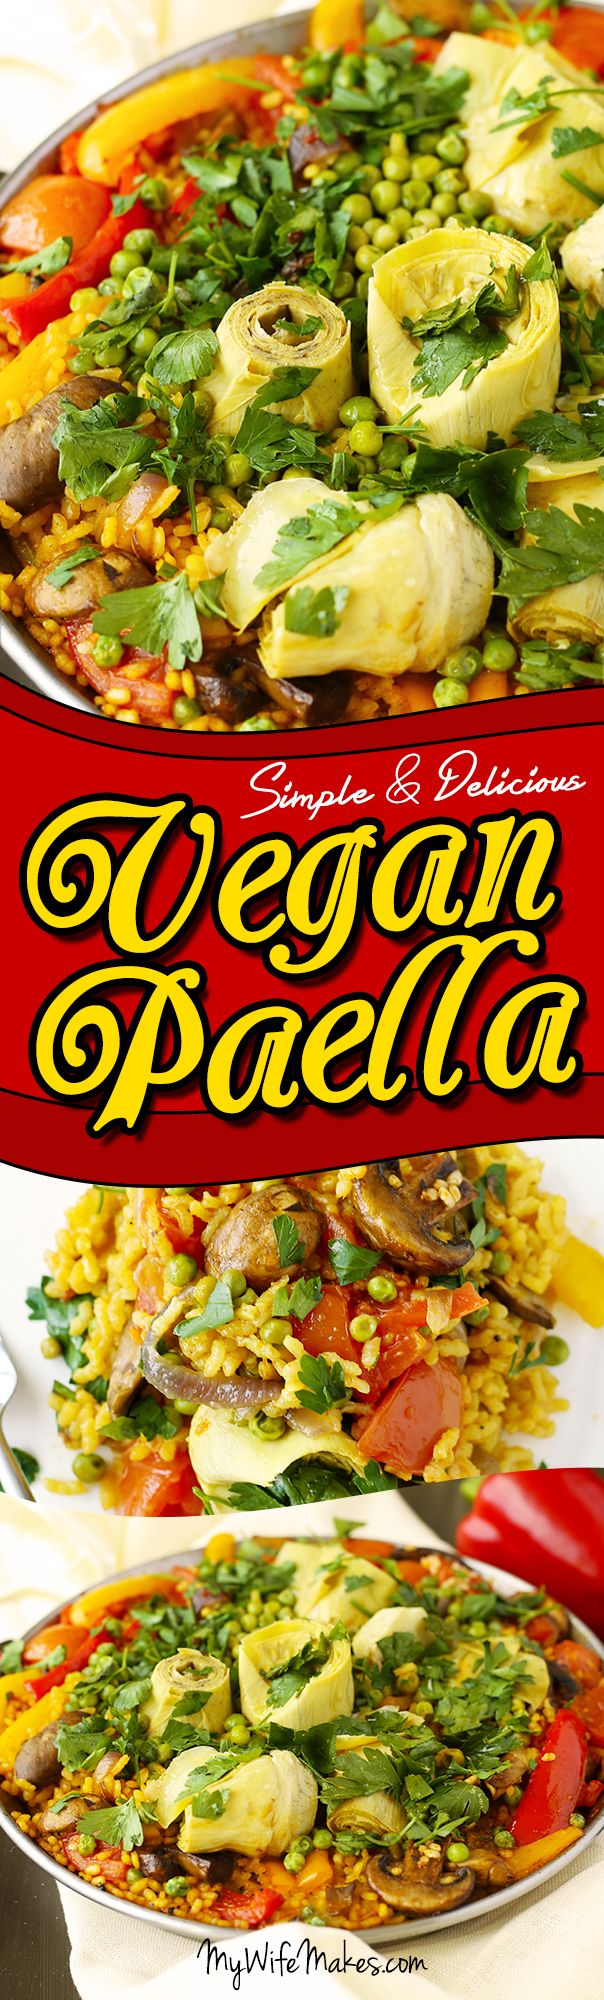 Dinner Ideas: Vegan Paella - delicious vegan spanish rice, flavored with saffron and smoked paprika, topped with mushrooms, artichoke hearts, red and yellow bell pepper, roma tomatoes and sweet green peas. #mushroms #artichokes #peppers #paella #spanish #vegan #saffron #onepan #delicious